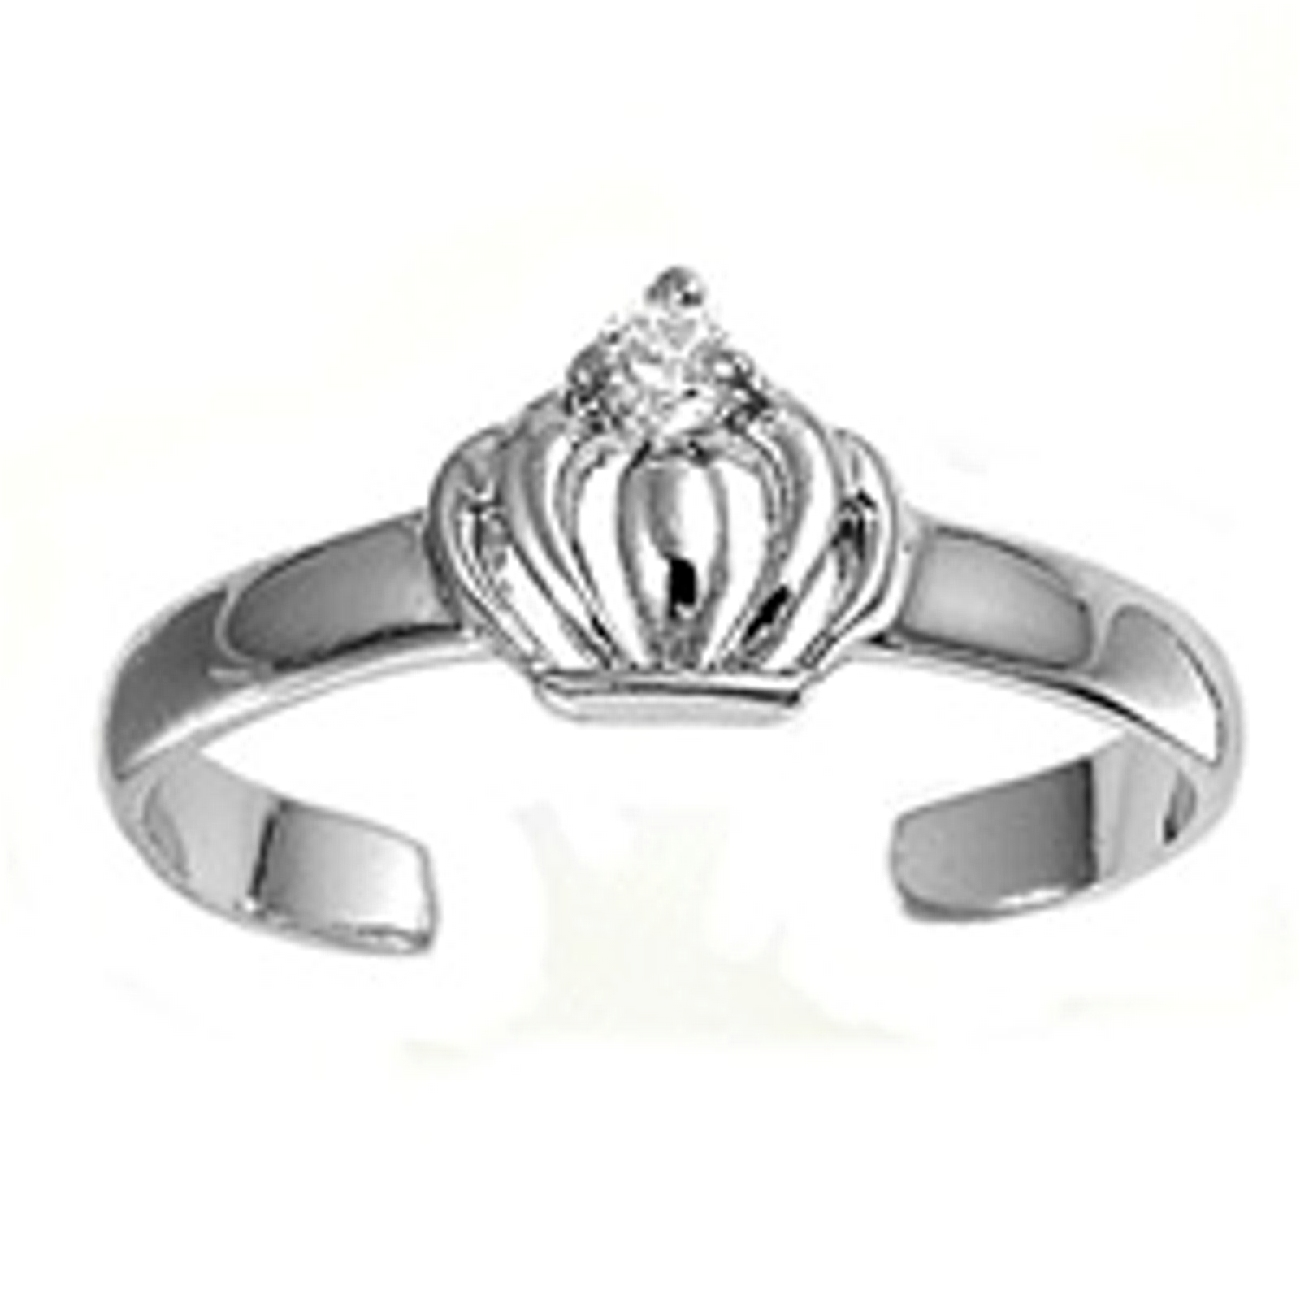 Crown With Clear Cubic Zirconia Adjustable Toe Ring